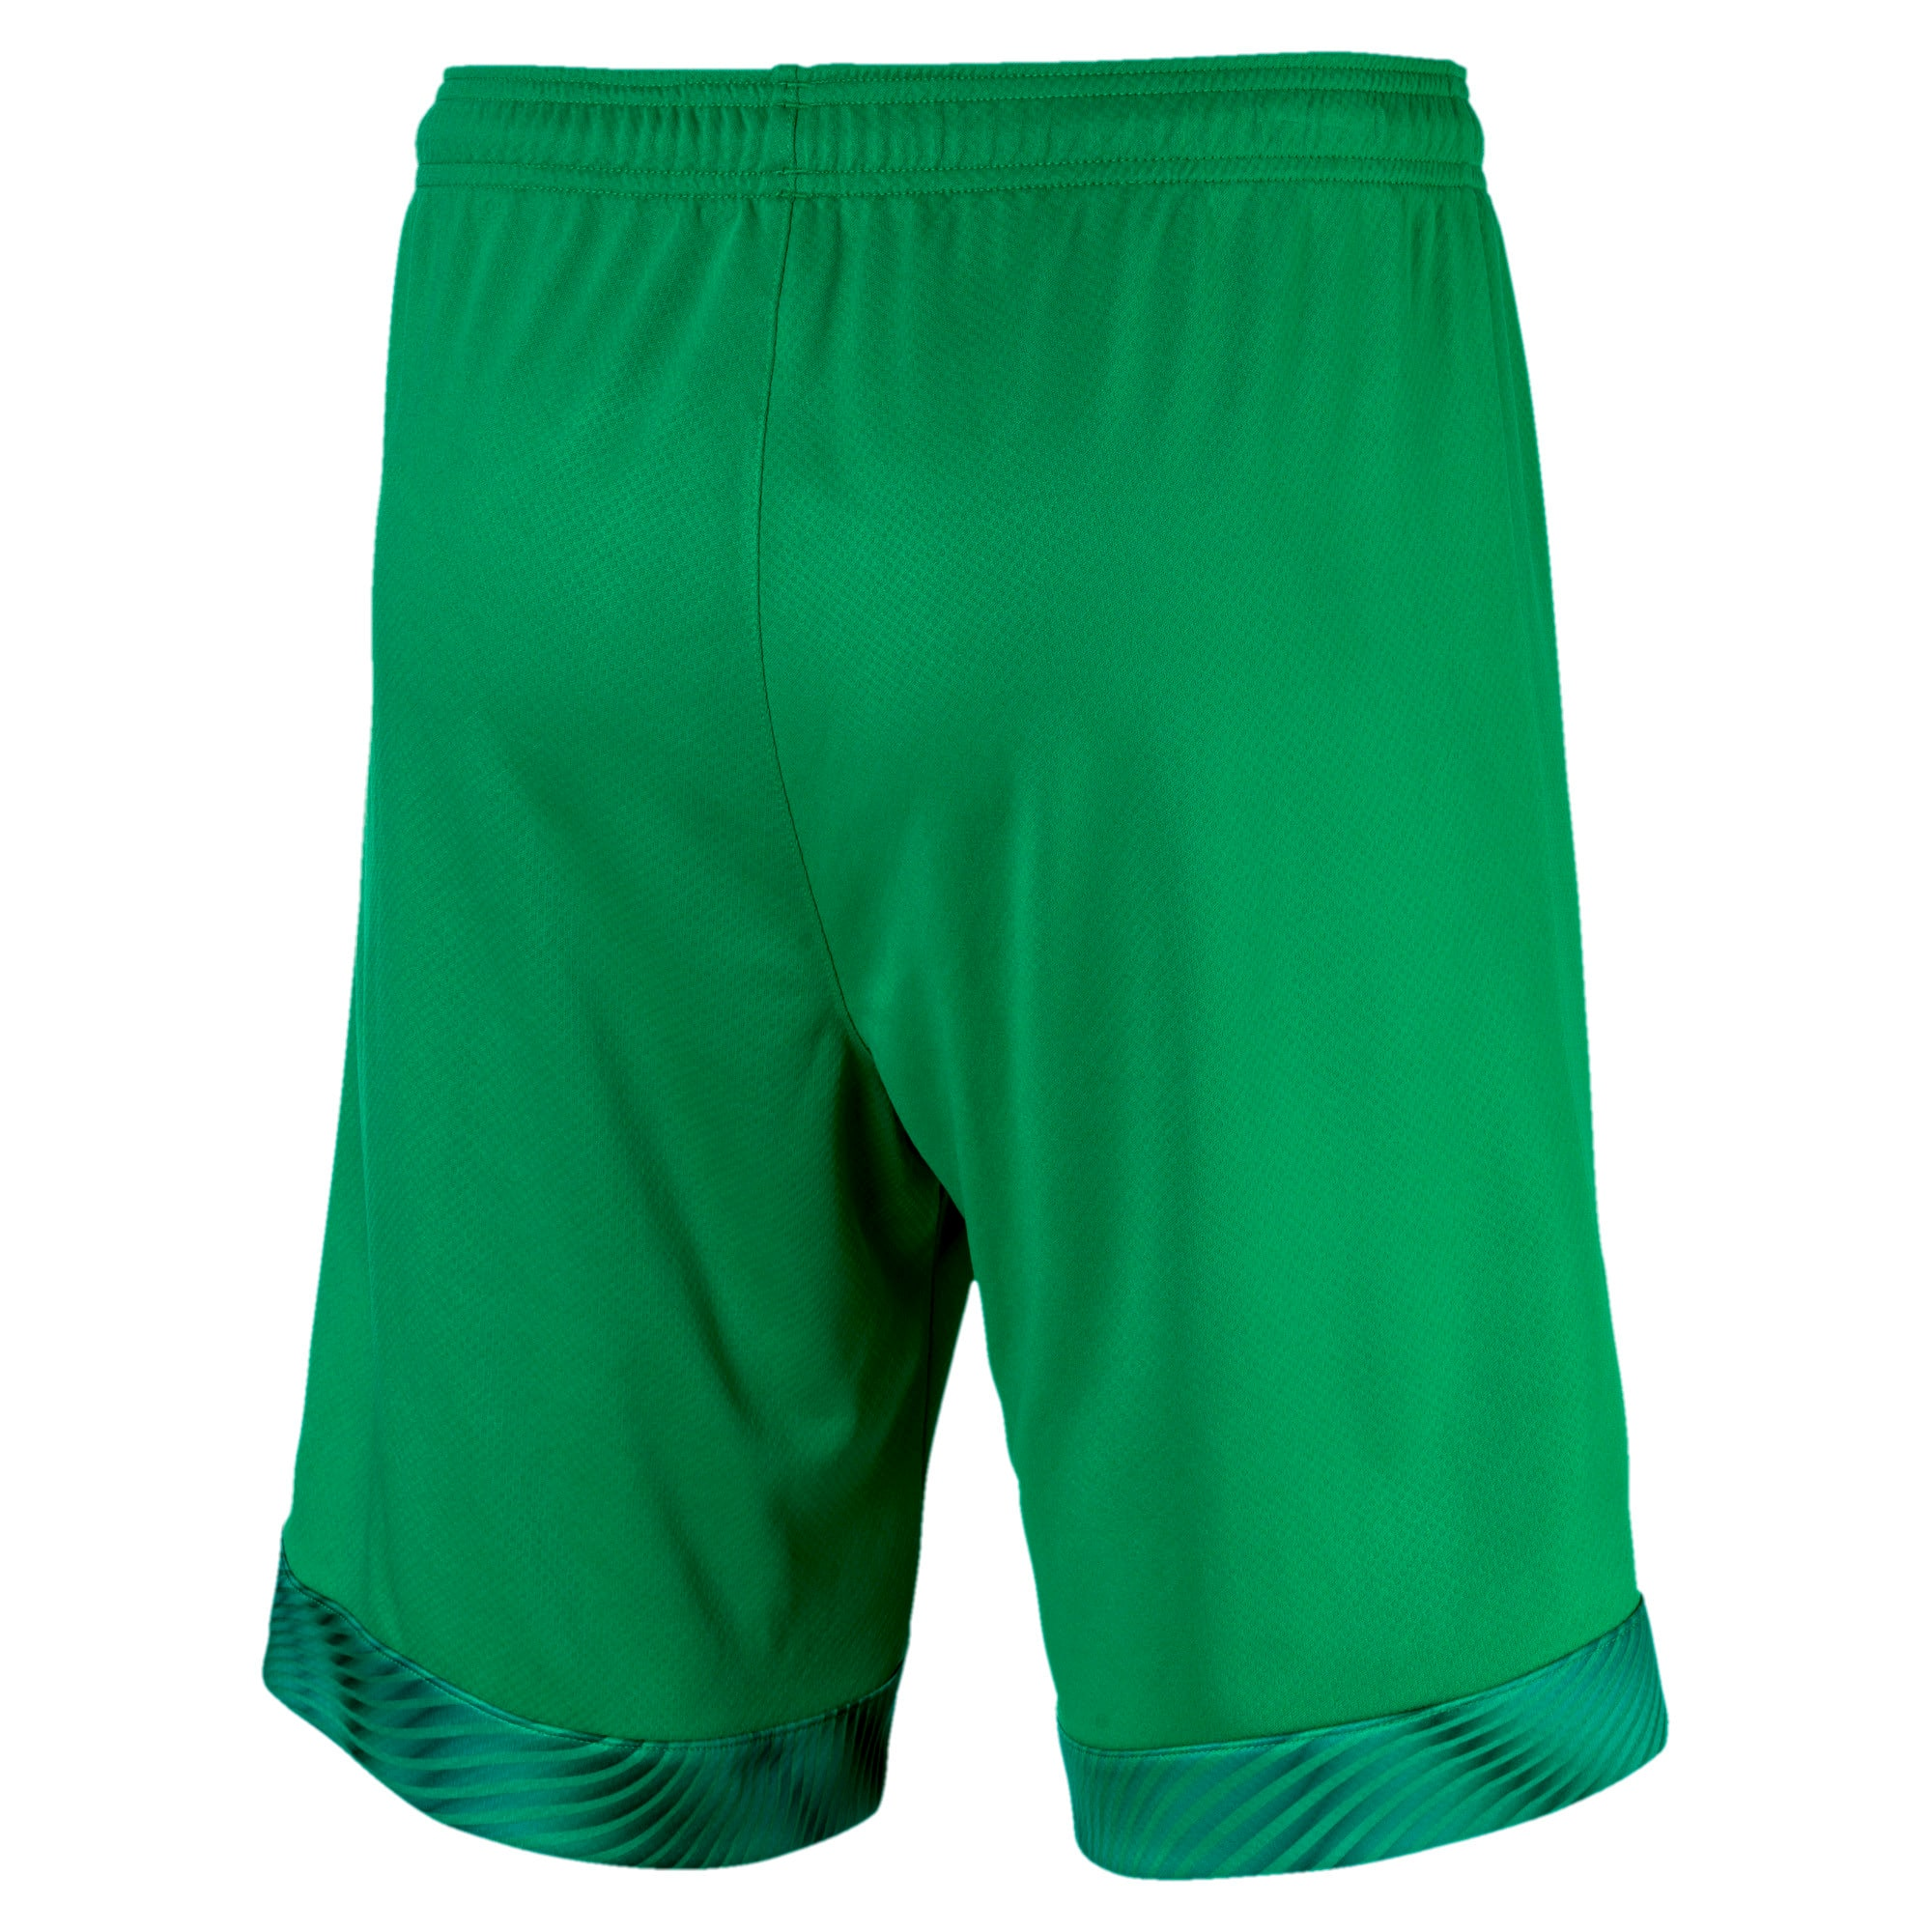 Thumbnail 2 of BVB Men's Replica Goalkeeper Shorts, Bright Green, medium